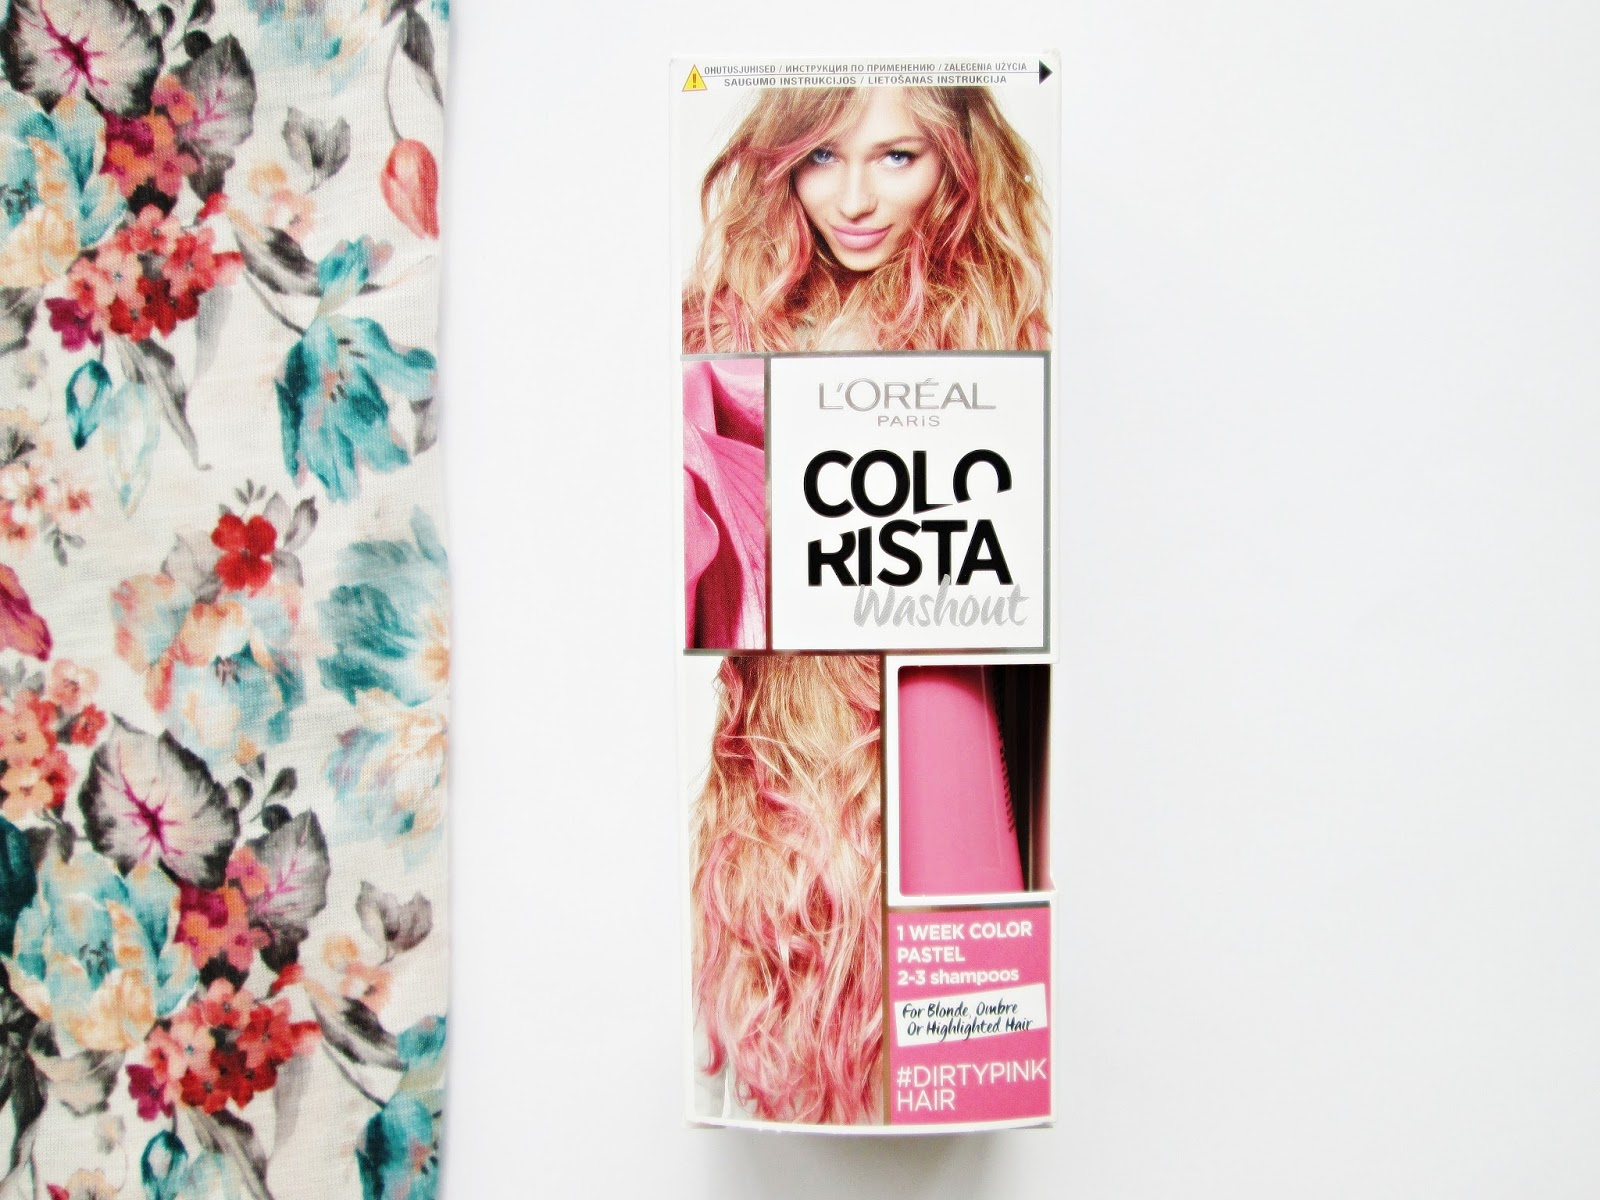 L'Oreal Colorista Dirty Pink